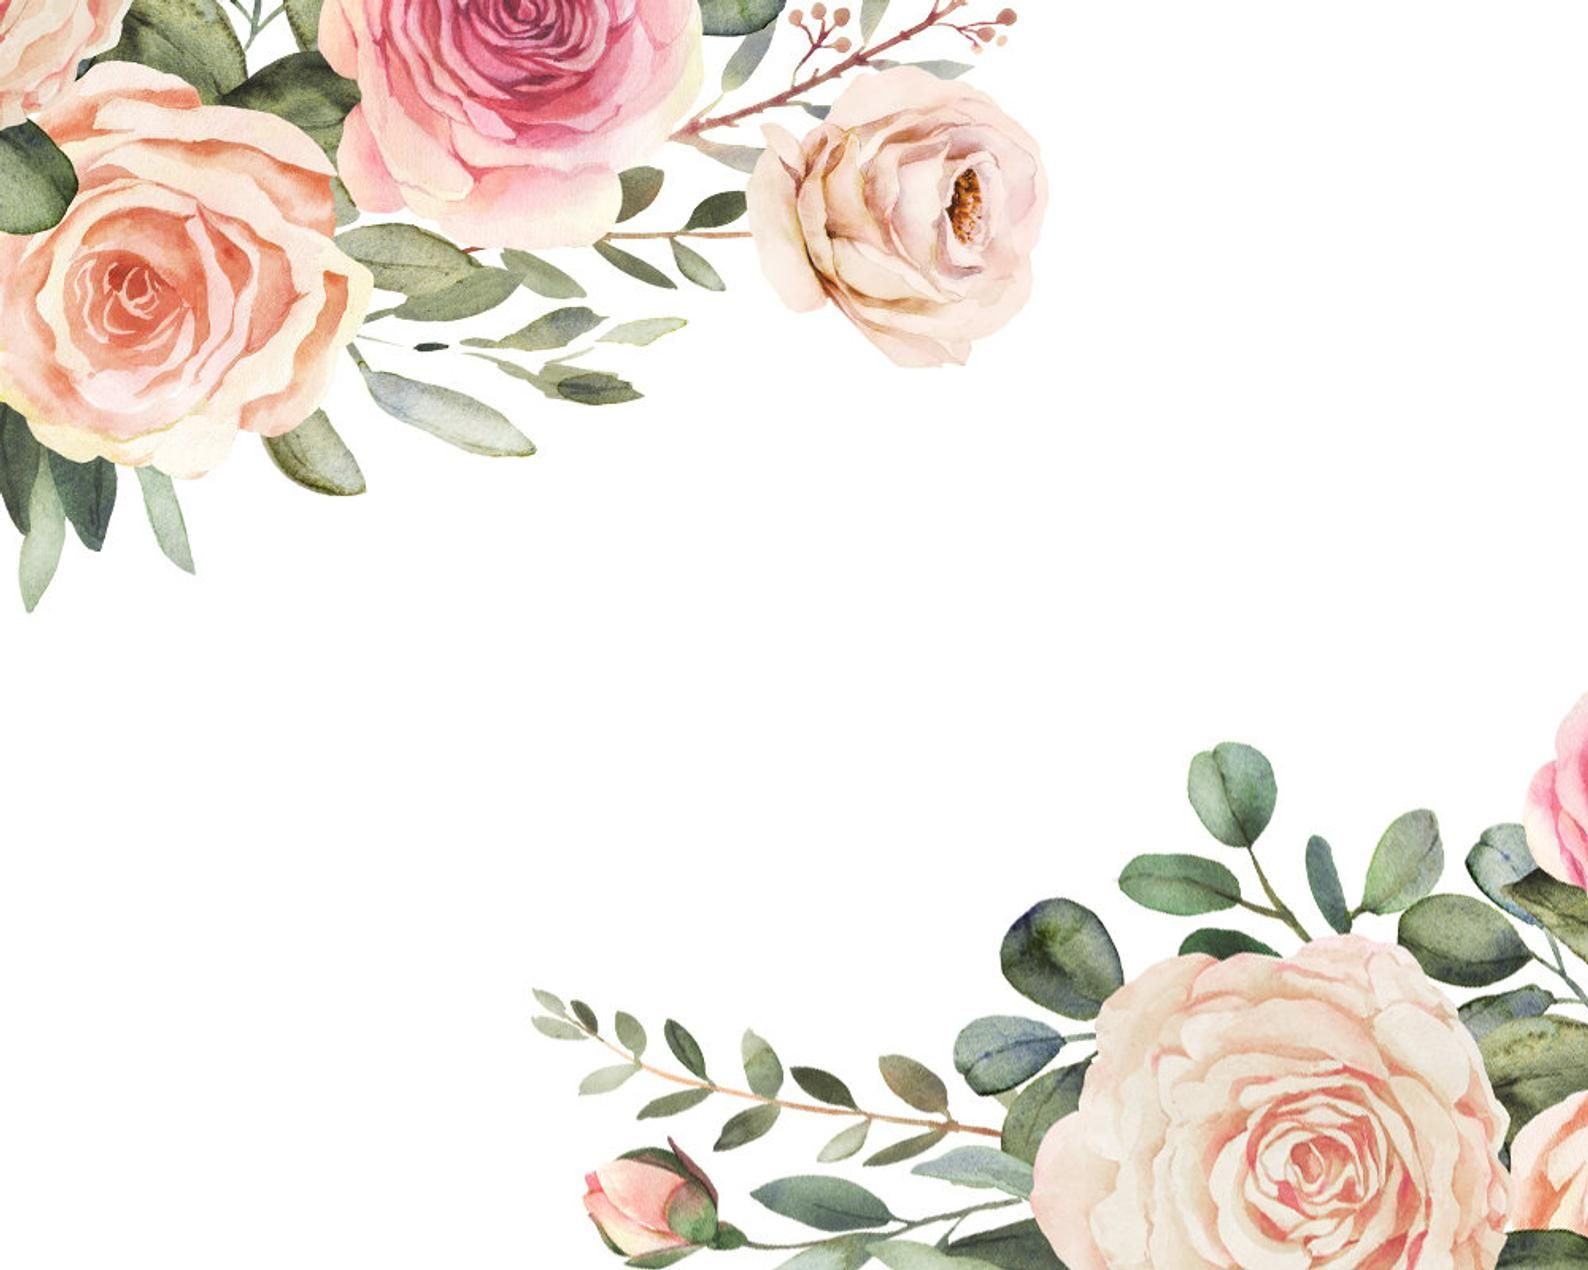 Elegant Watercolor Clipart With Roses And Eucalyptus Greenery Etsy Floral Border Design Watercolor Flowers Floral Watercolor